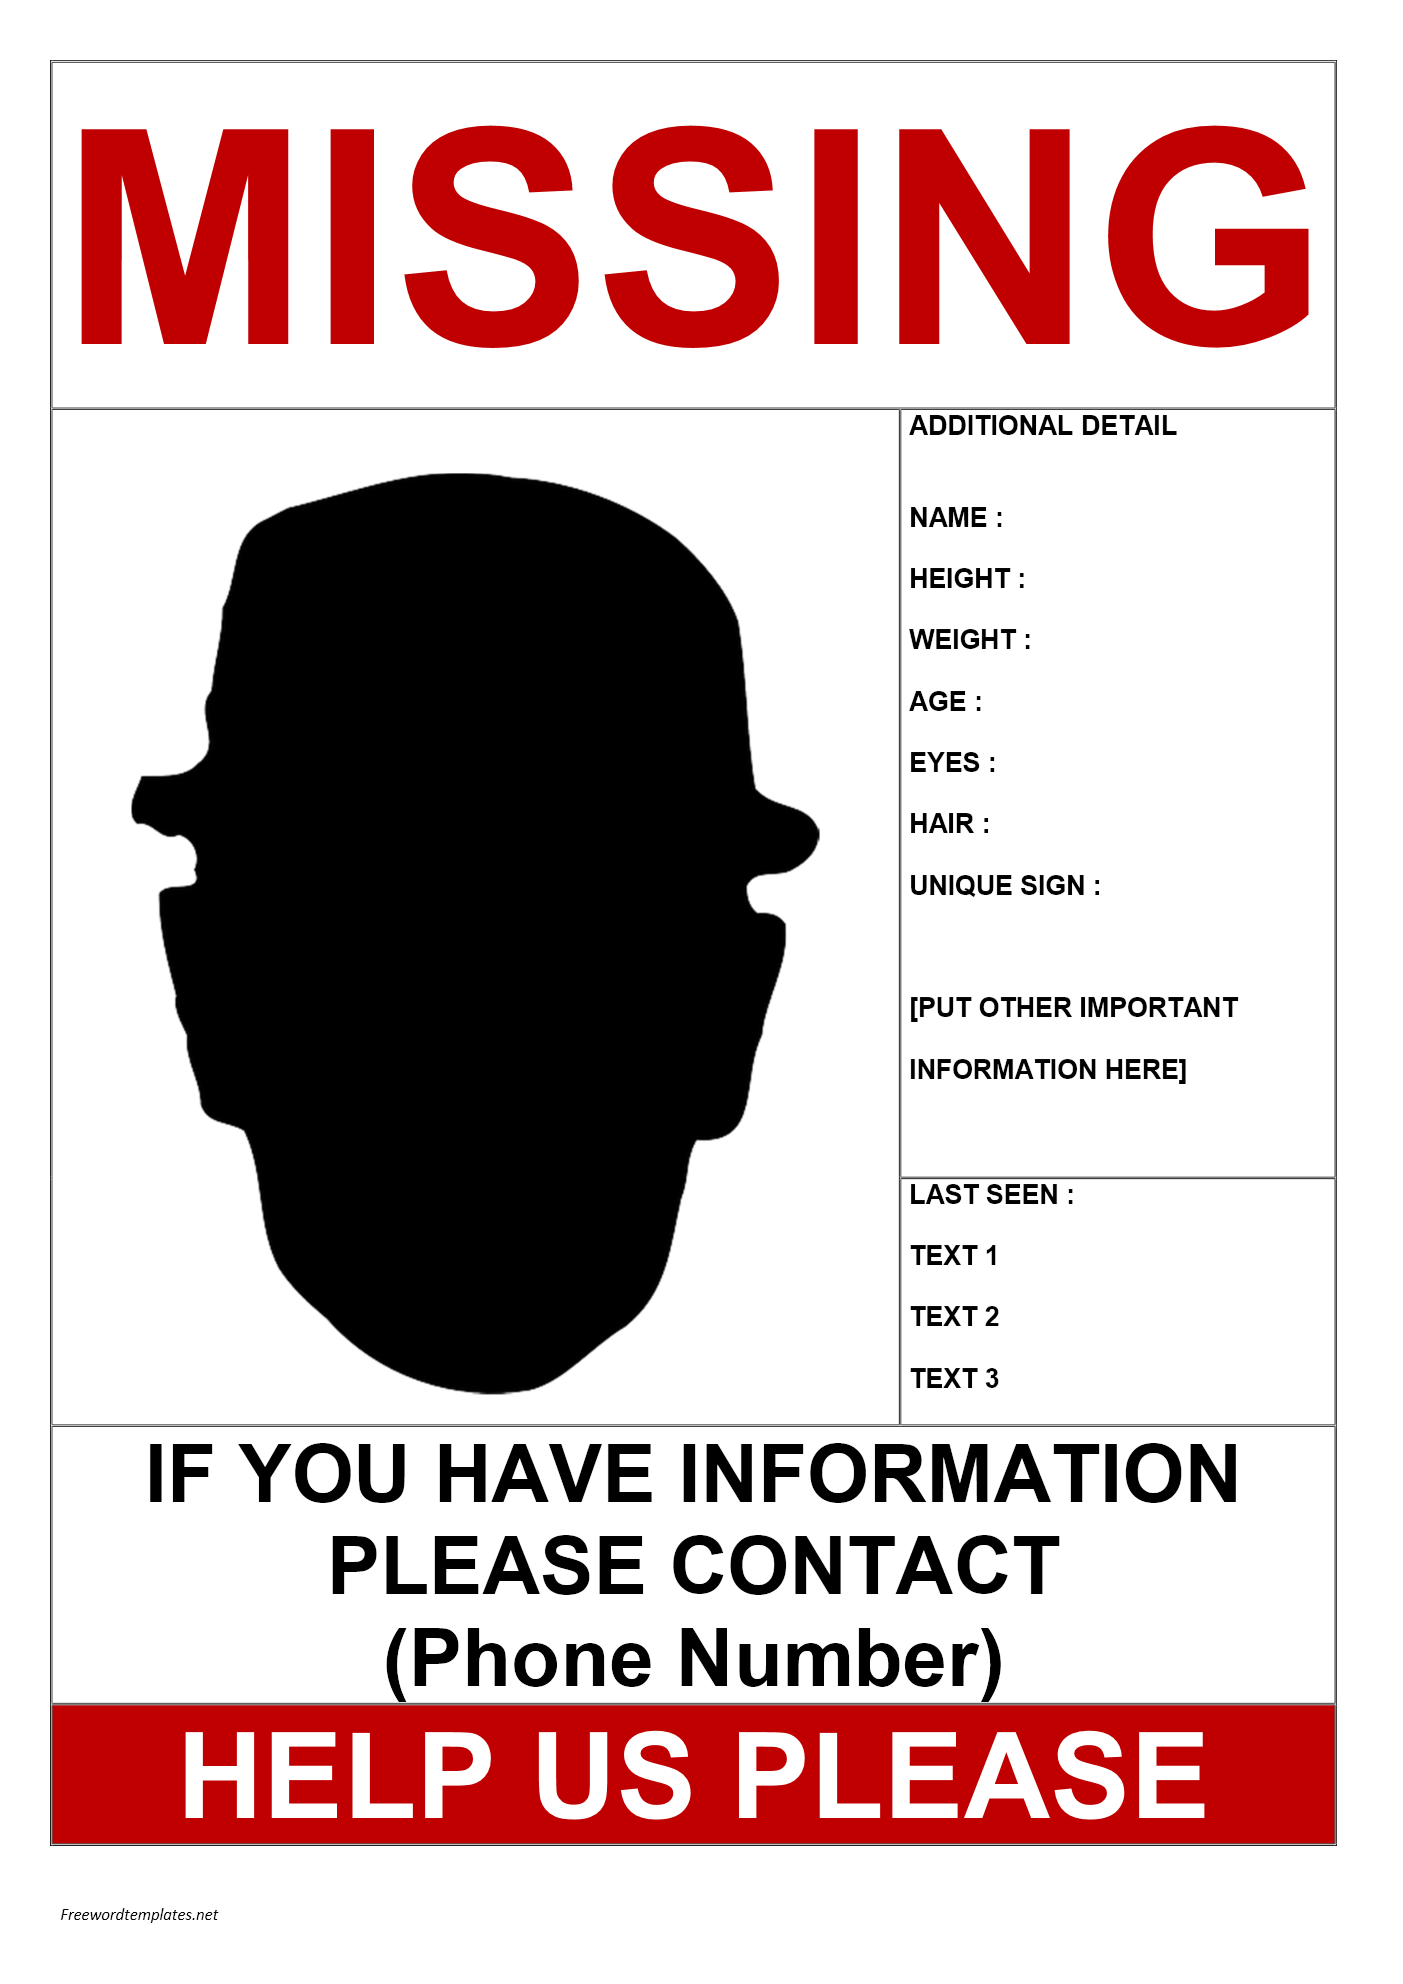 Missing Person Template Microsoft Word